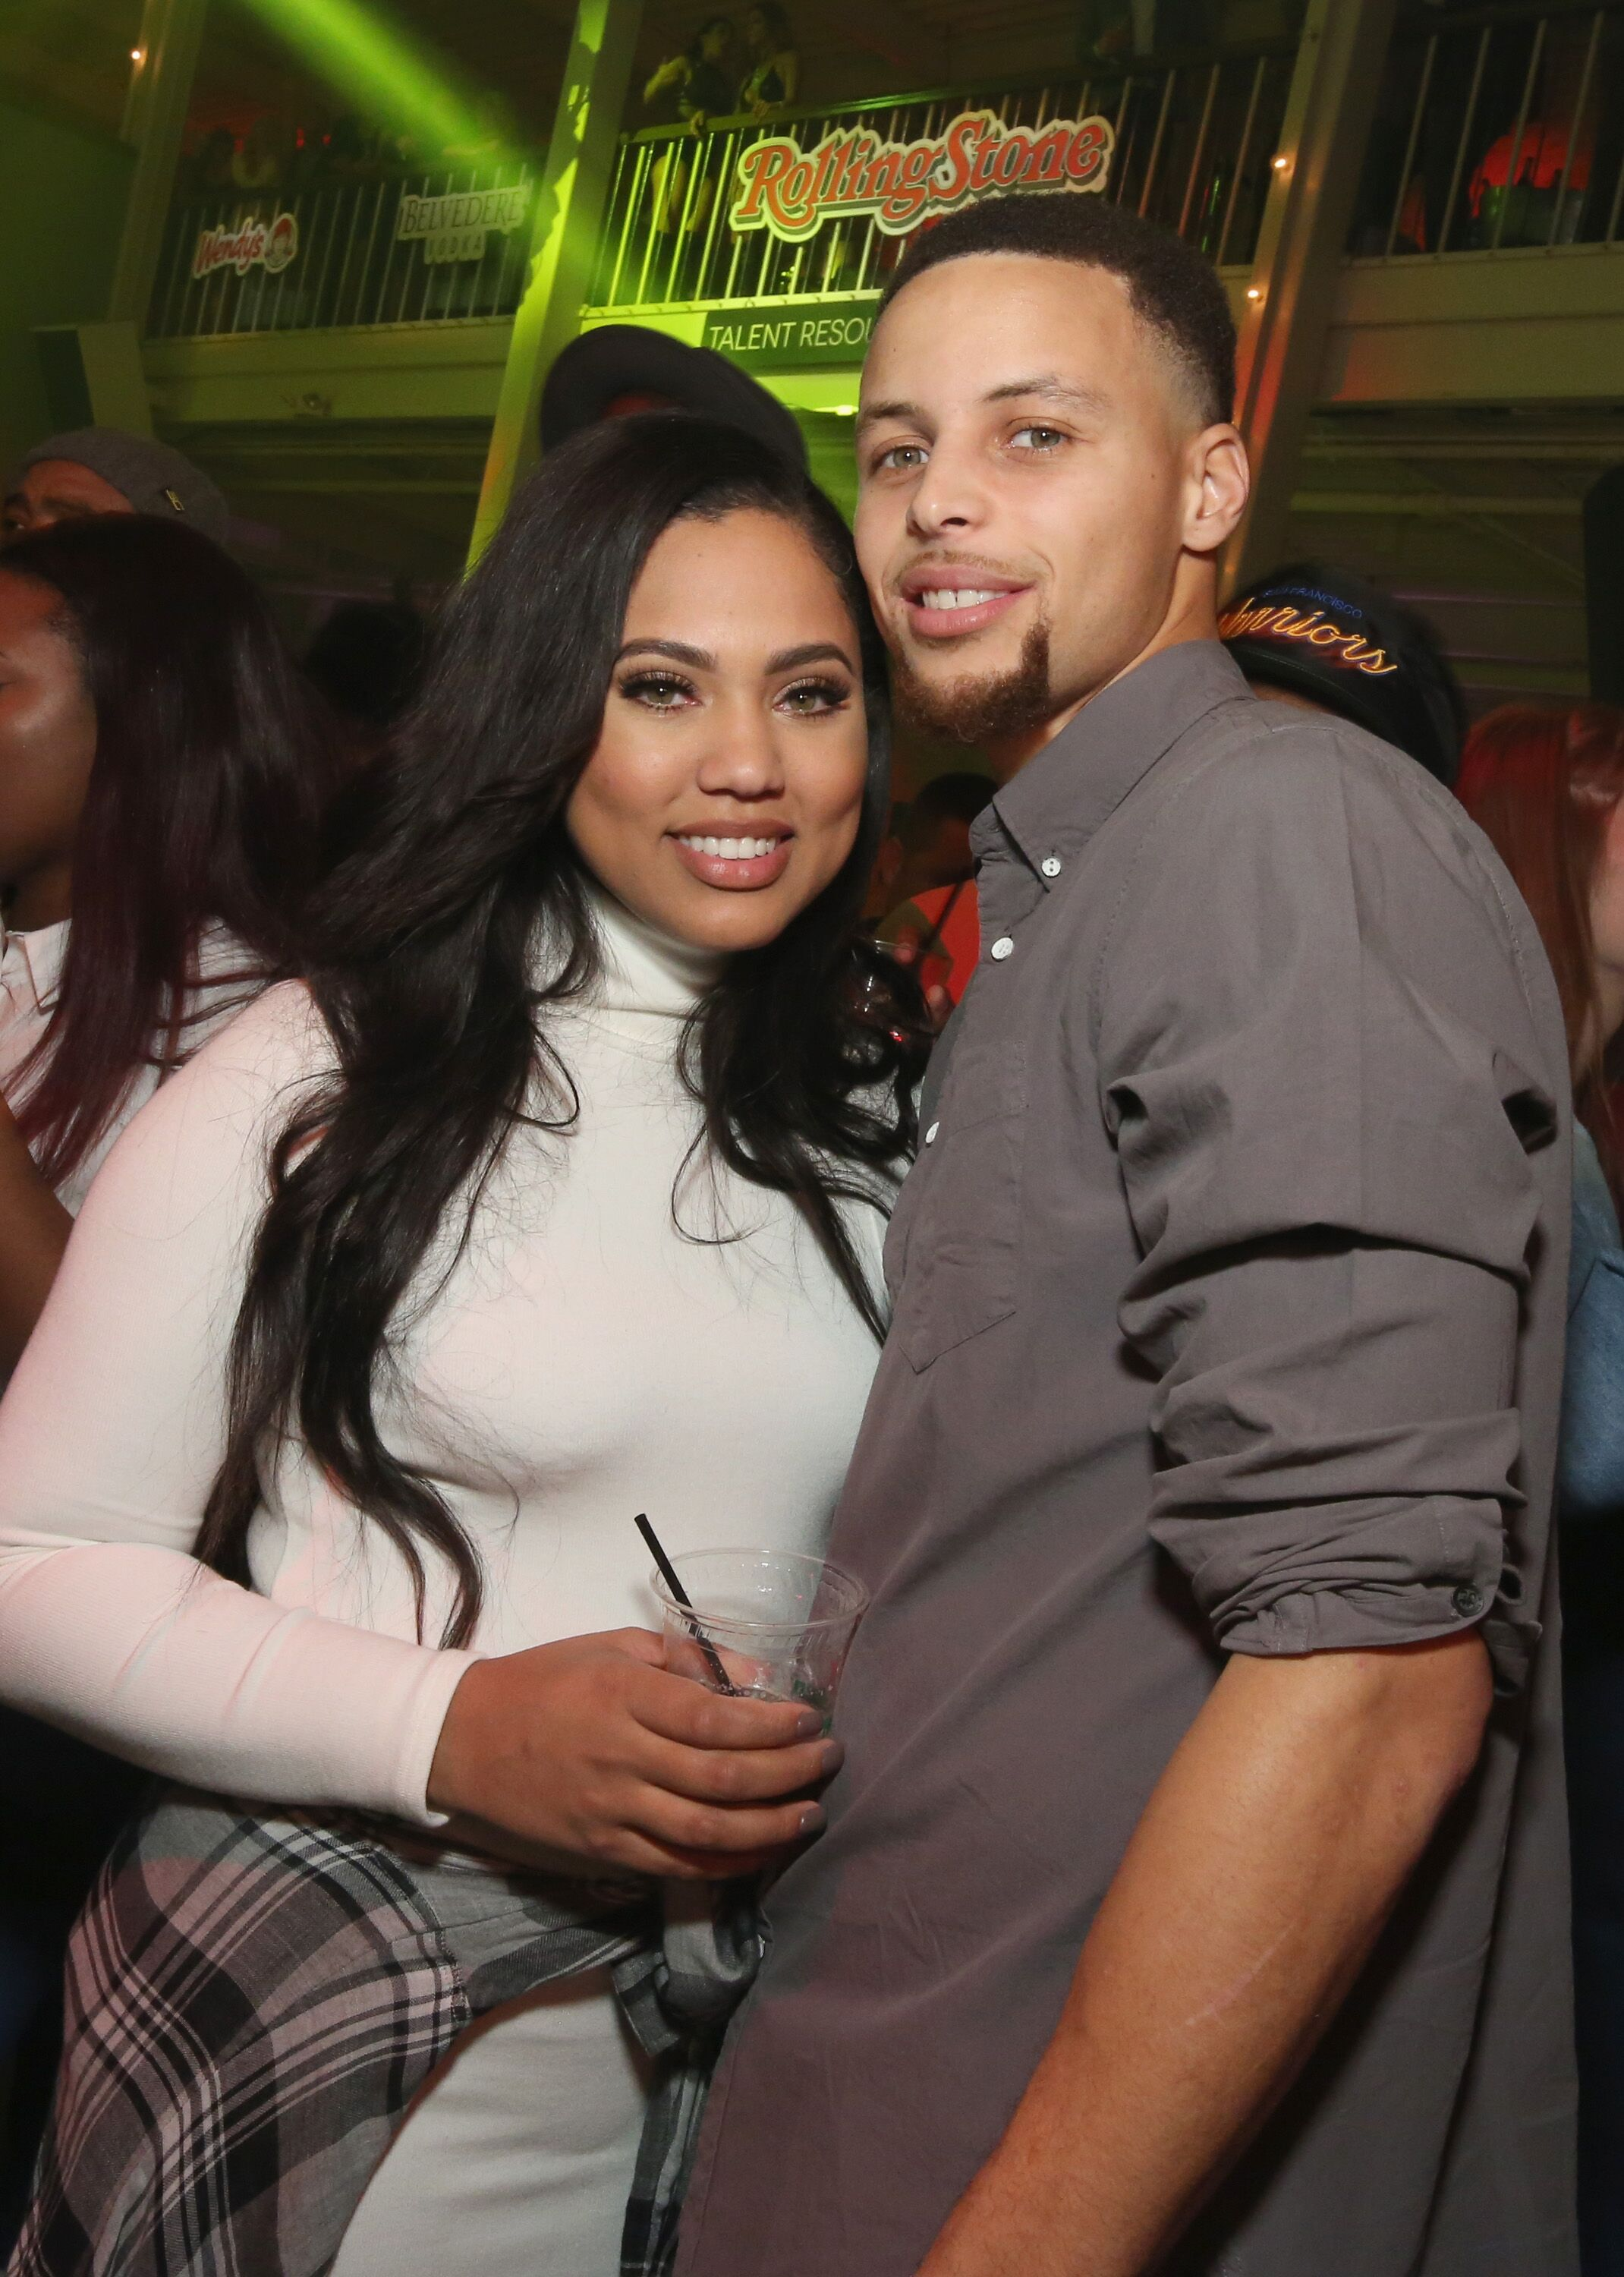 Ayesha Curry and NBA player Stephen Curry attend Rolling Stone Live SF with Talent Resources on February 7, 2016. | Source: Getty Images